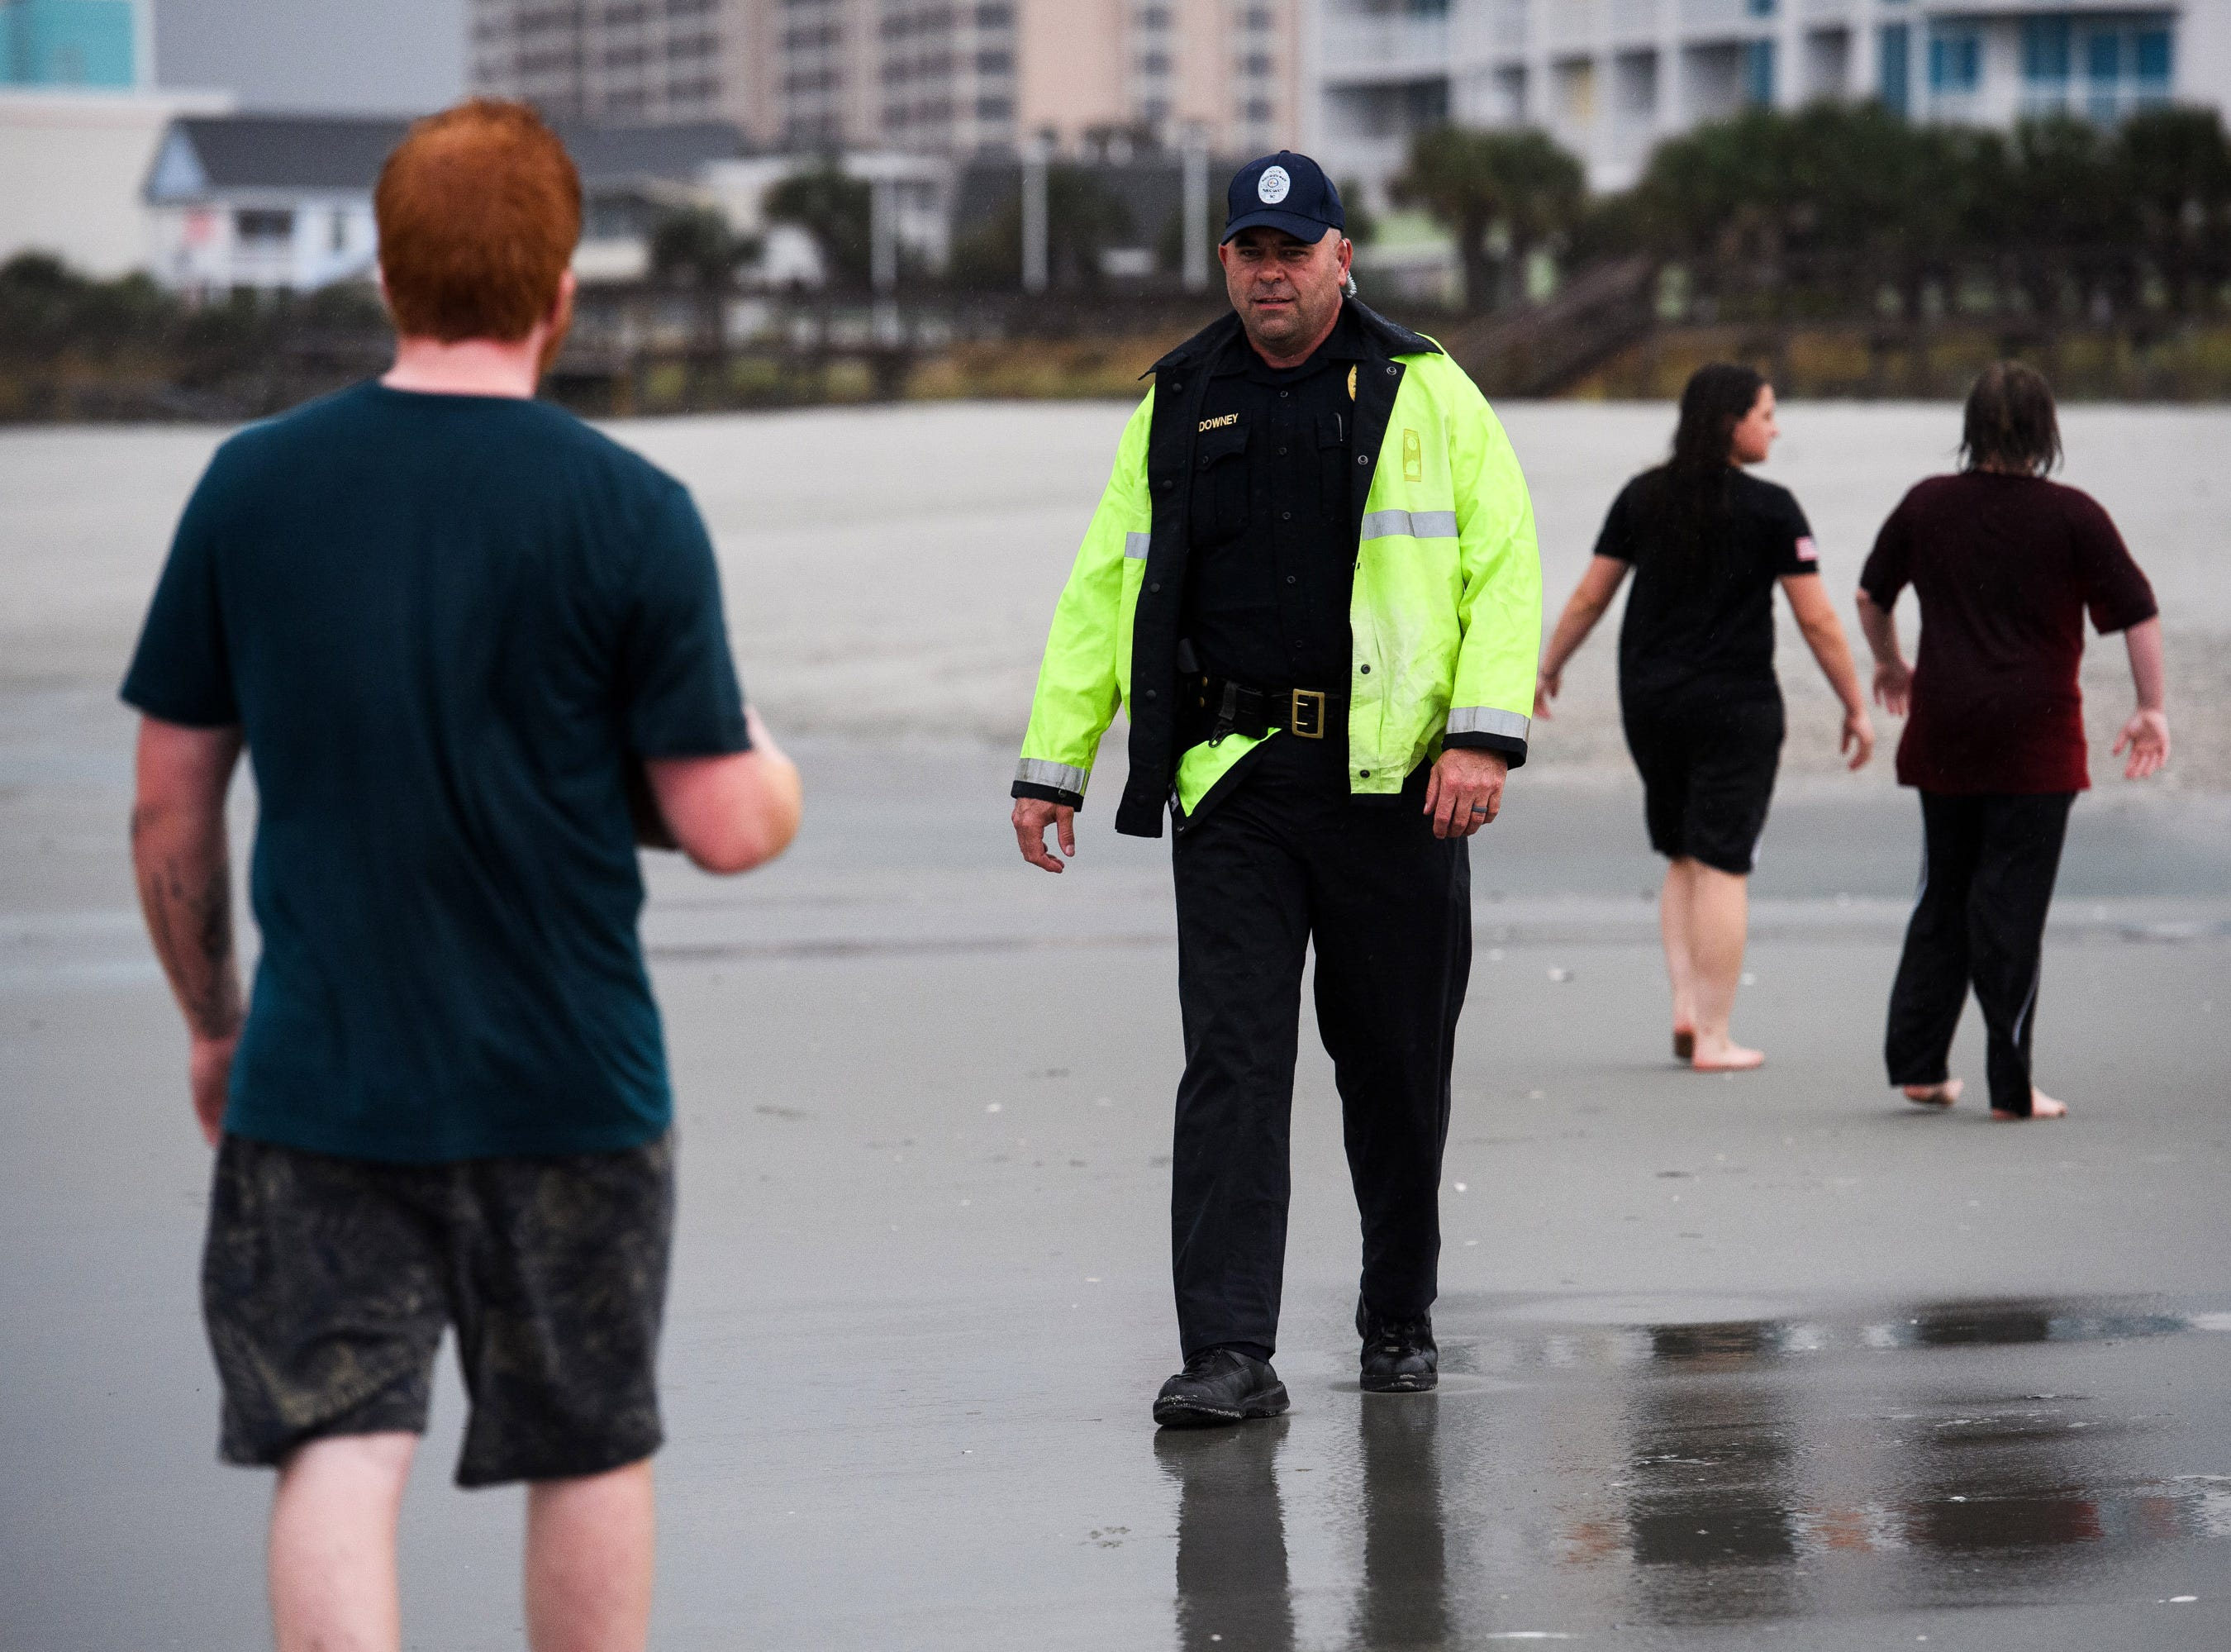 Sept 13, 2018, North Myrtle Beach, SC, A North Myrtle Beach public safety officer informs beachgoers of the 7 p.m. curfew due to Hurricane Florence.